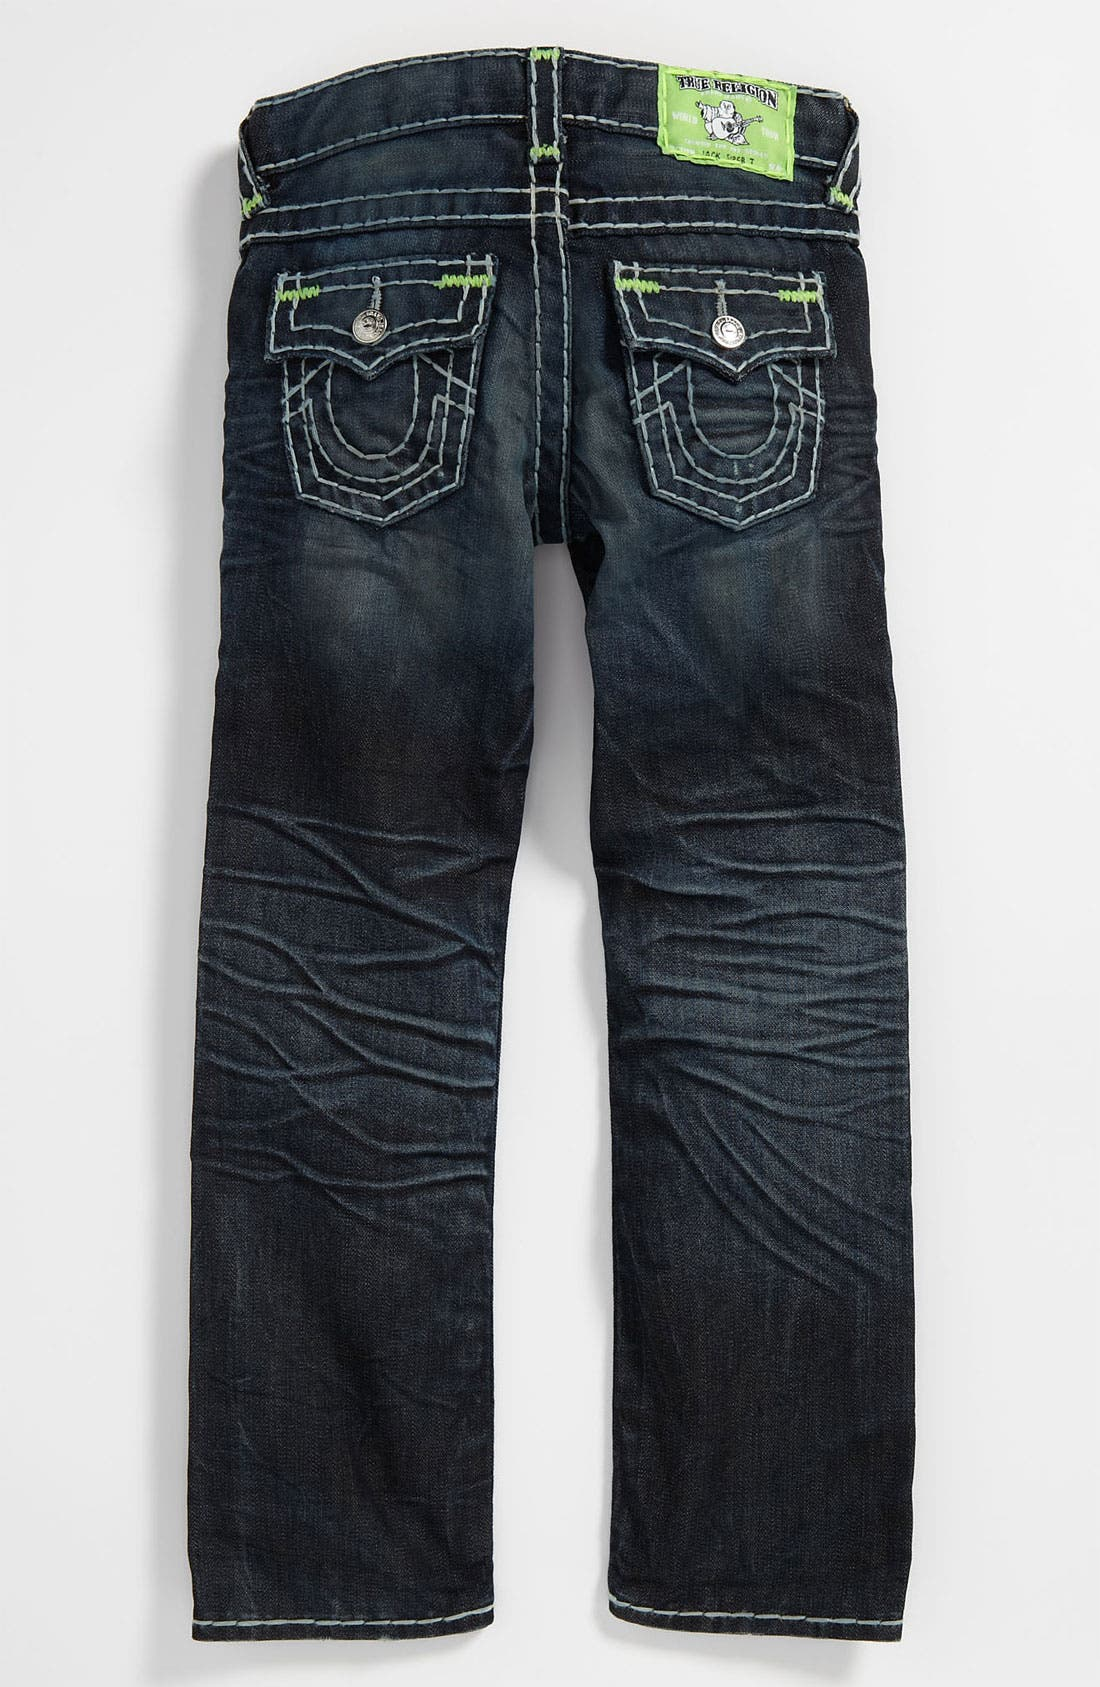 Alternate Image 1 Selected - True Religion Brand Jeans 'Jack Super T' (Little Boys)